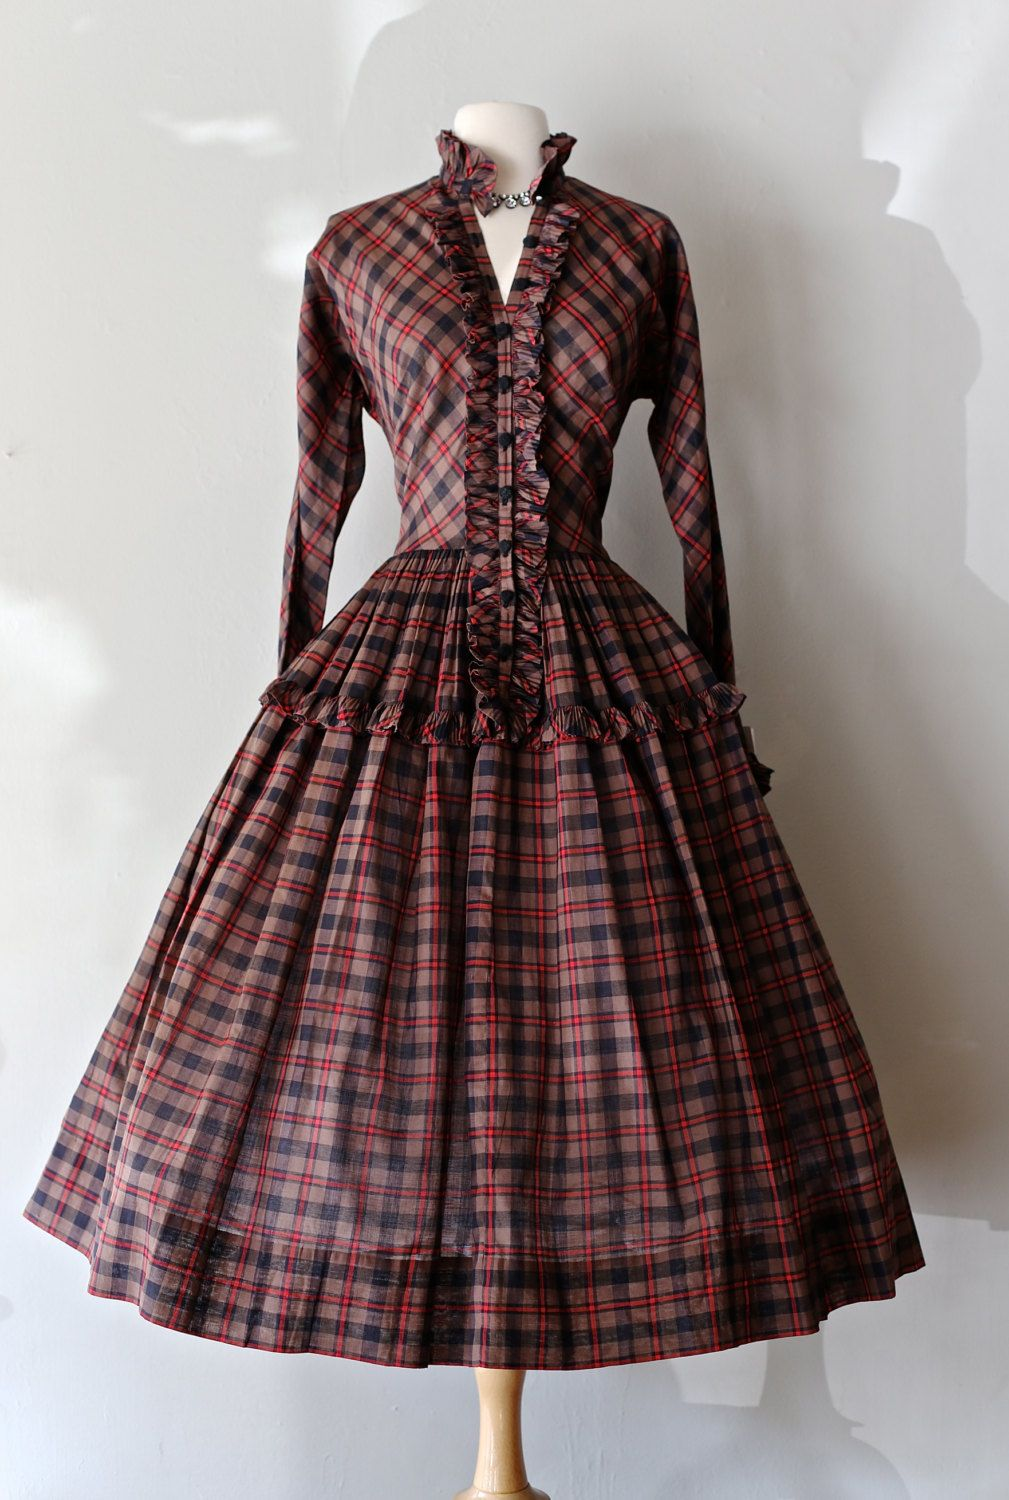 9d4a70cd8 Rare 1950s Claire McCardell Dress ~ Vintage 50s Plaid Dress With Full Skirt  ~ Vintage Claire McCardell Dress by xtabayvintage on Etsy